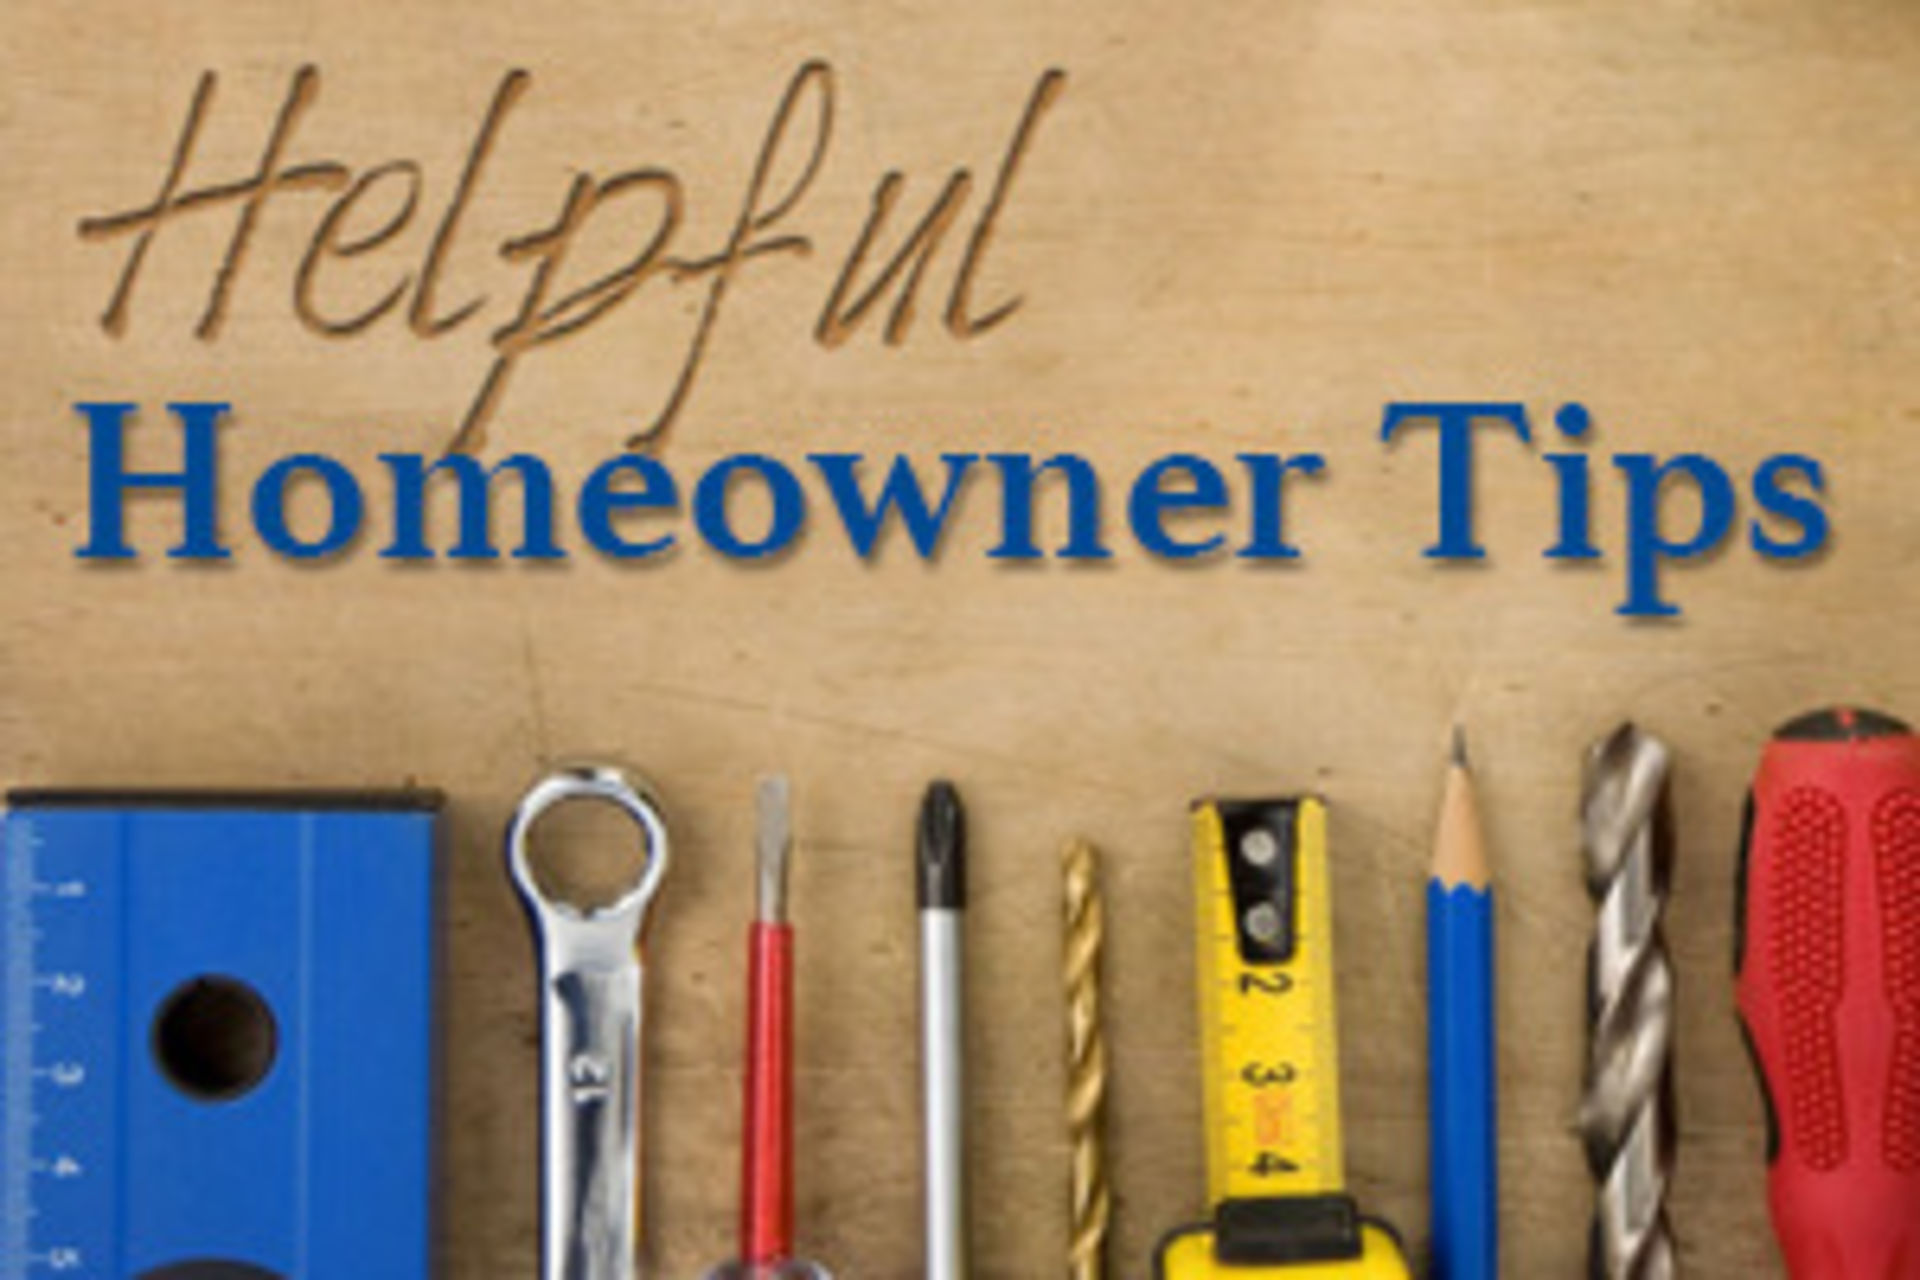 5 Things Every Homeowner Needs to Know!